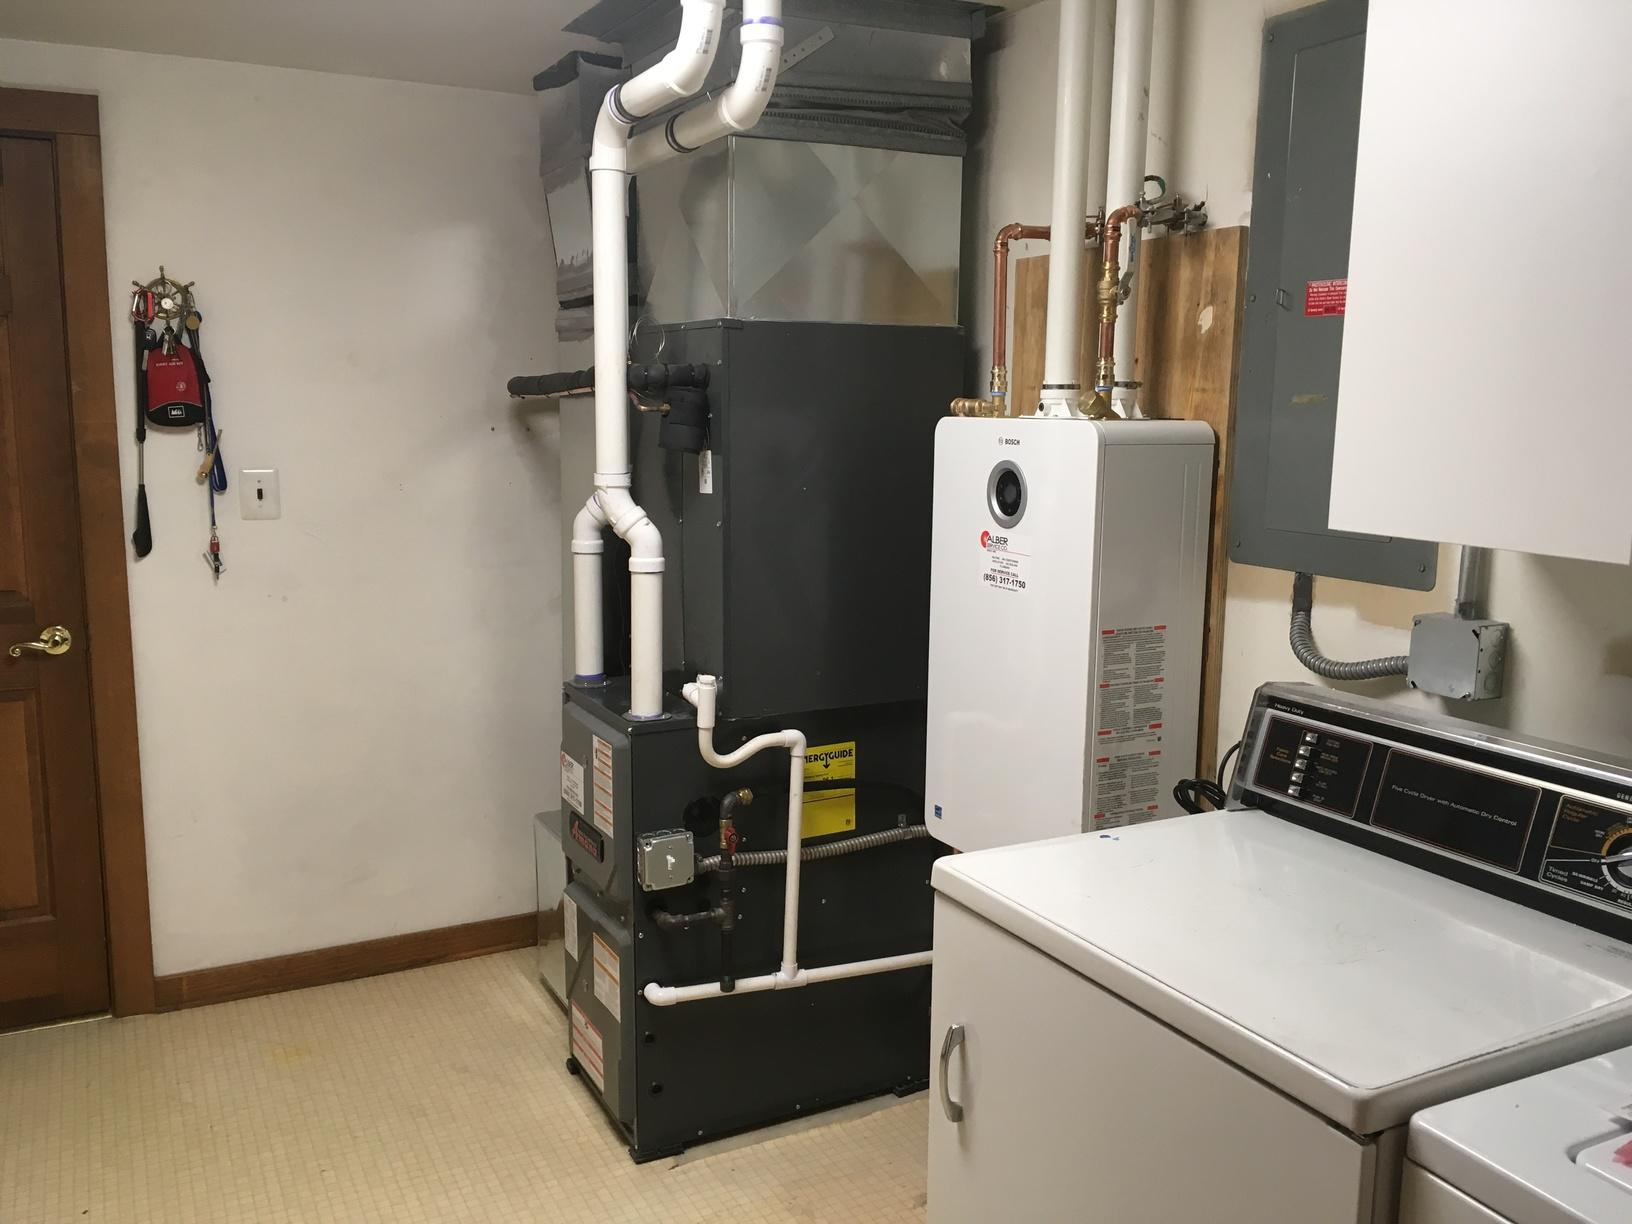 Bosch Tankless Hot Water Heater in Cherry Hill, NJ - After Photo